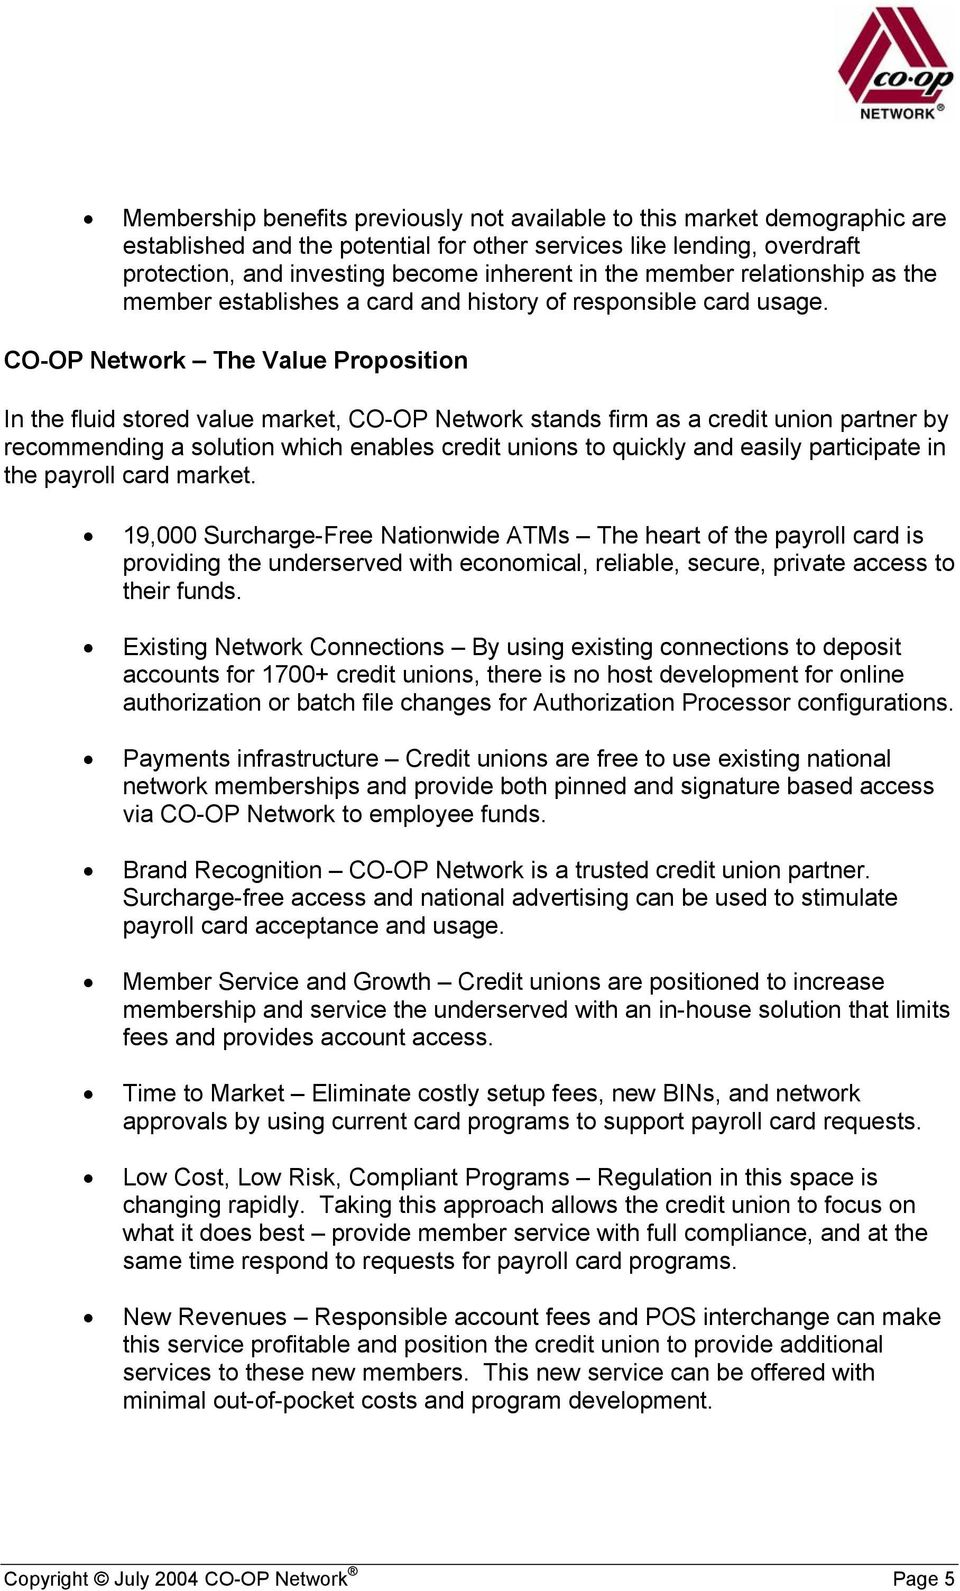 CO-OP Network The Value Proposition In the fluid stored value market, CO-OP Network stands firm as a credit union partner by recommending a solution which enables credit unions to quickly and easily